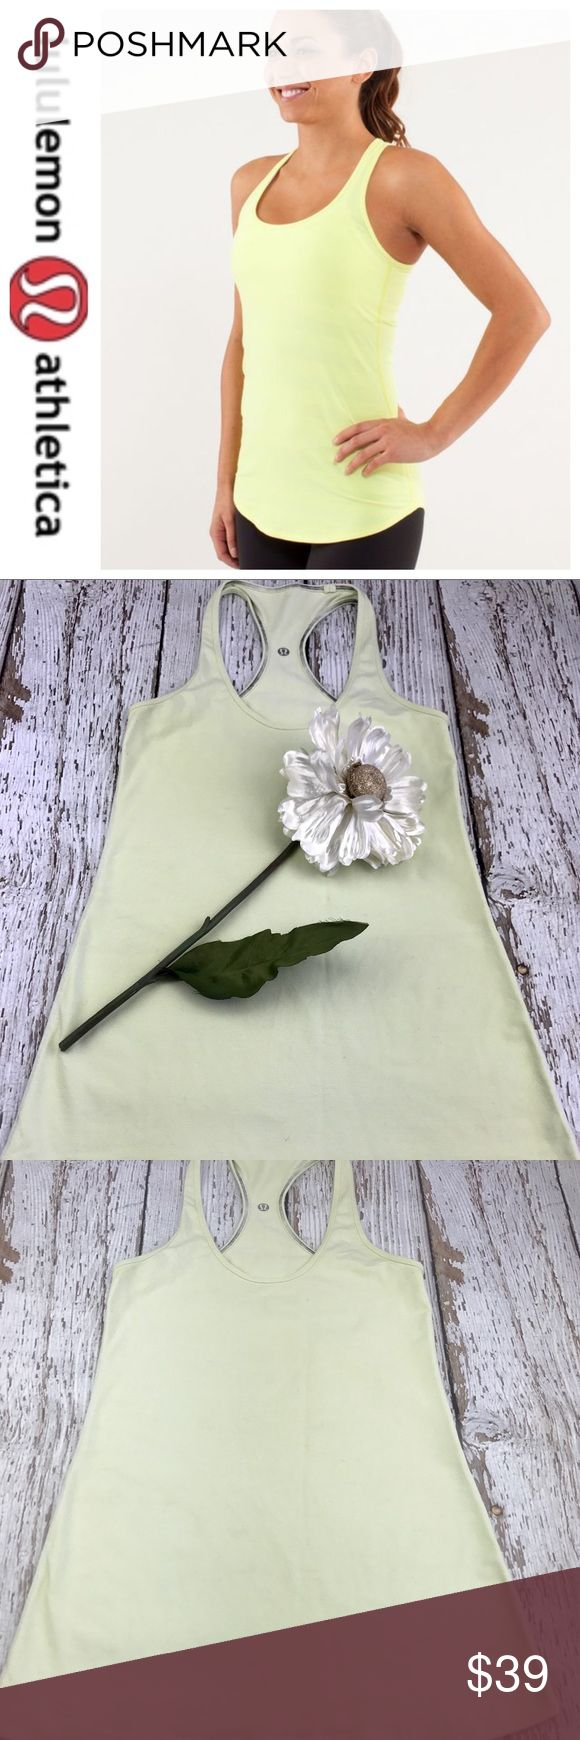 💕SALE💕Lululemon Yellow Cool Razorback Tank Top Fabulous 💕Lululemon Yellow Cool Razorback Tank Top size has been removed lululemon athletica Tops Tank Tops